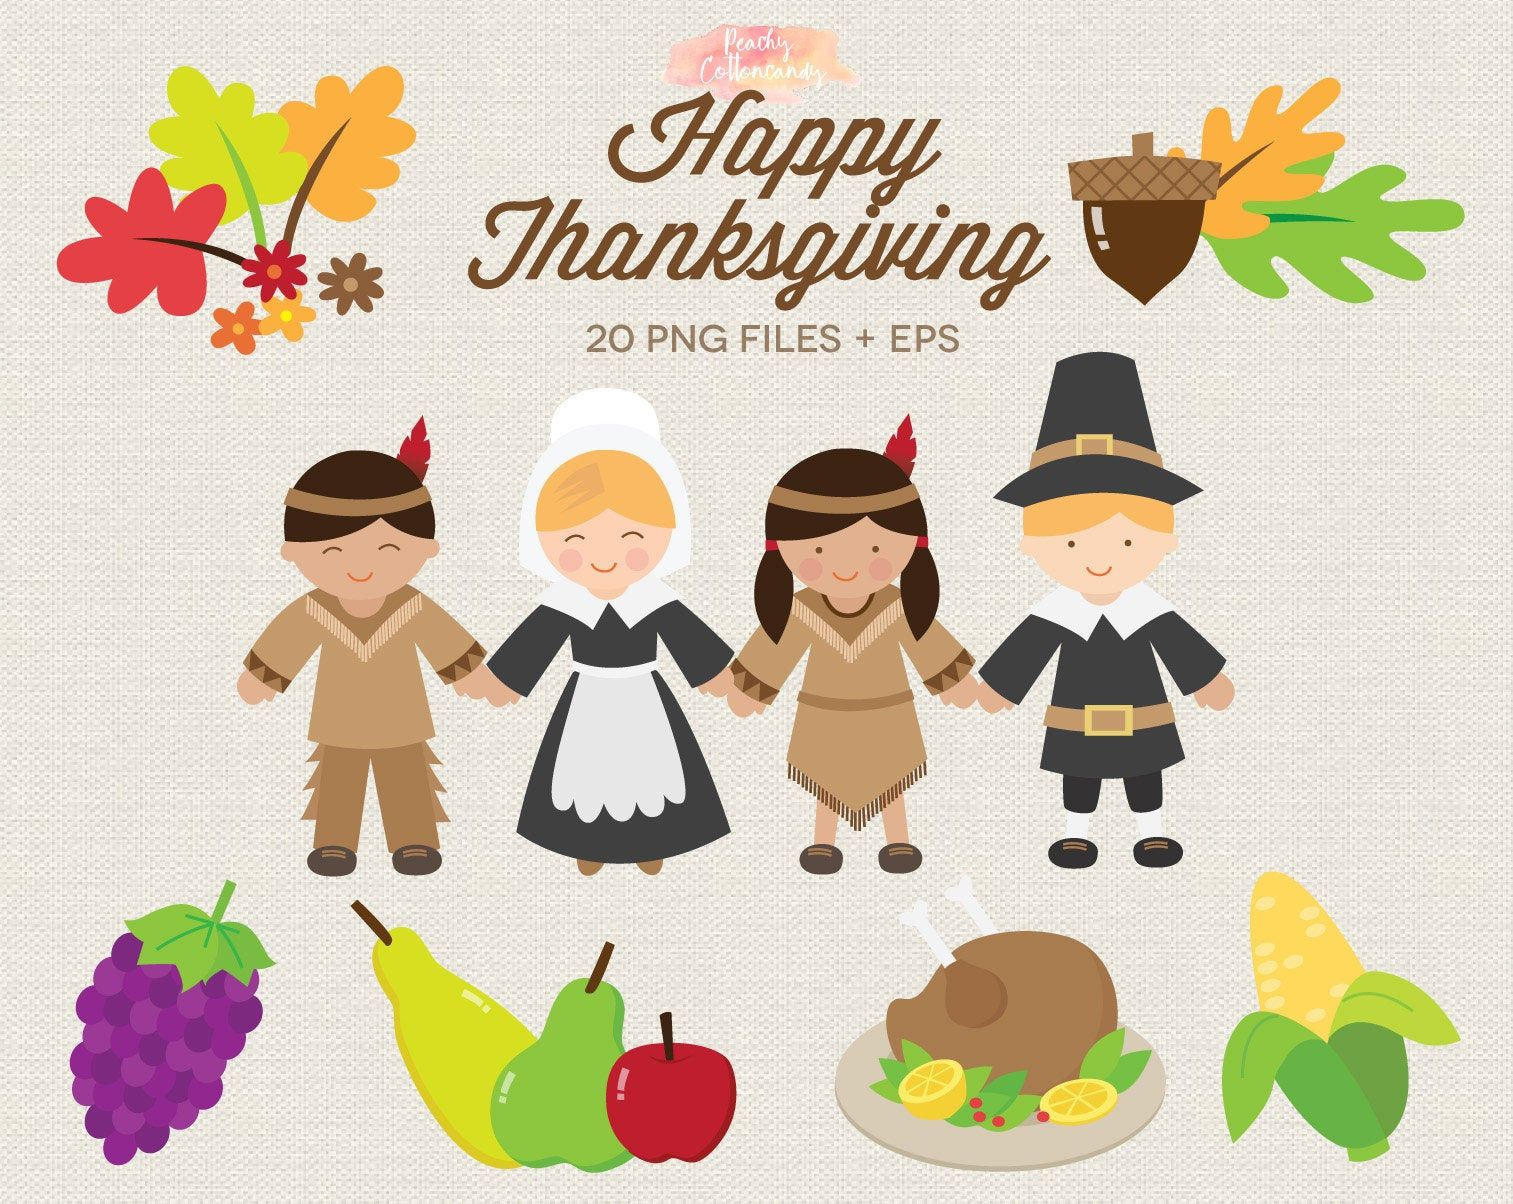 Buy 3 Get 30 Off Happy Thanksgiving Clipart Thanksgiving Etsy Thanksgiving Clip Art Happy Thanksgiving Clipart Happy Thanksgiving Images